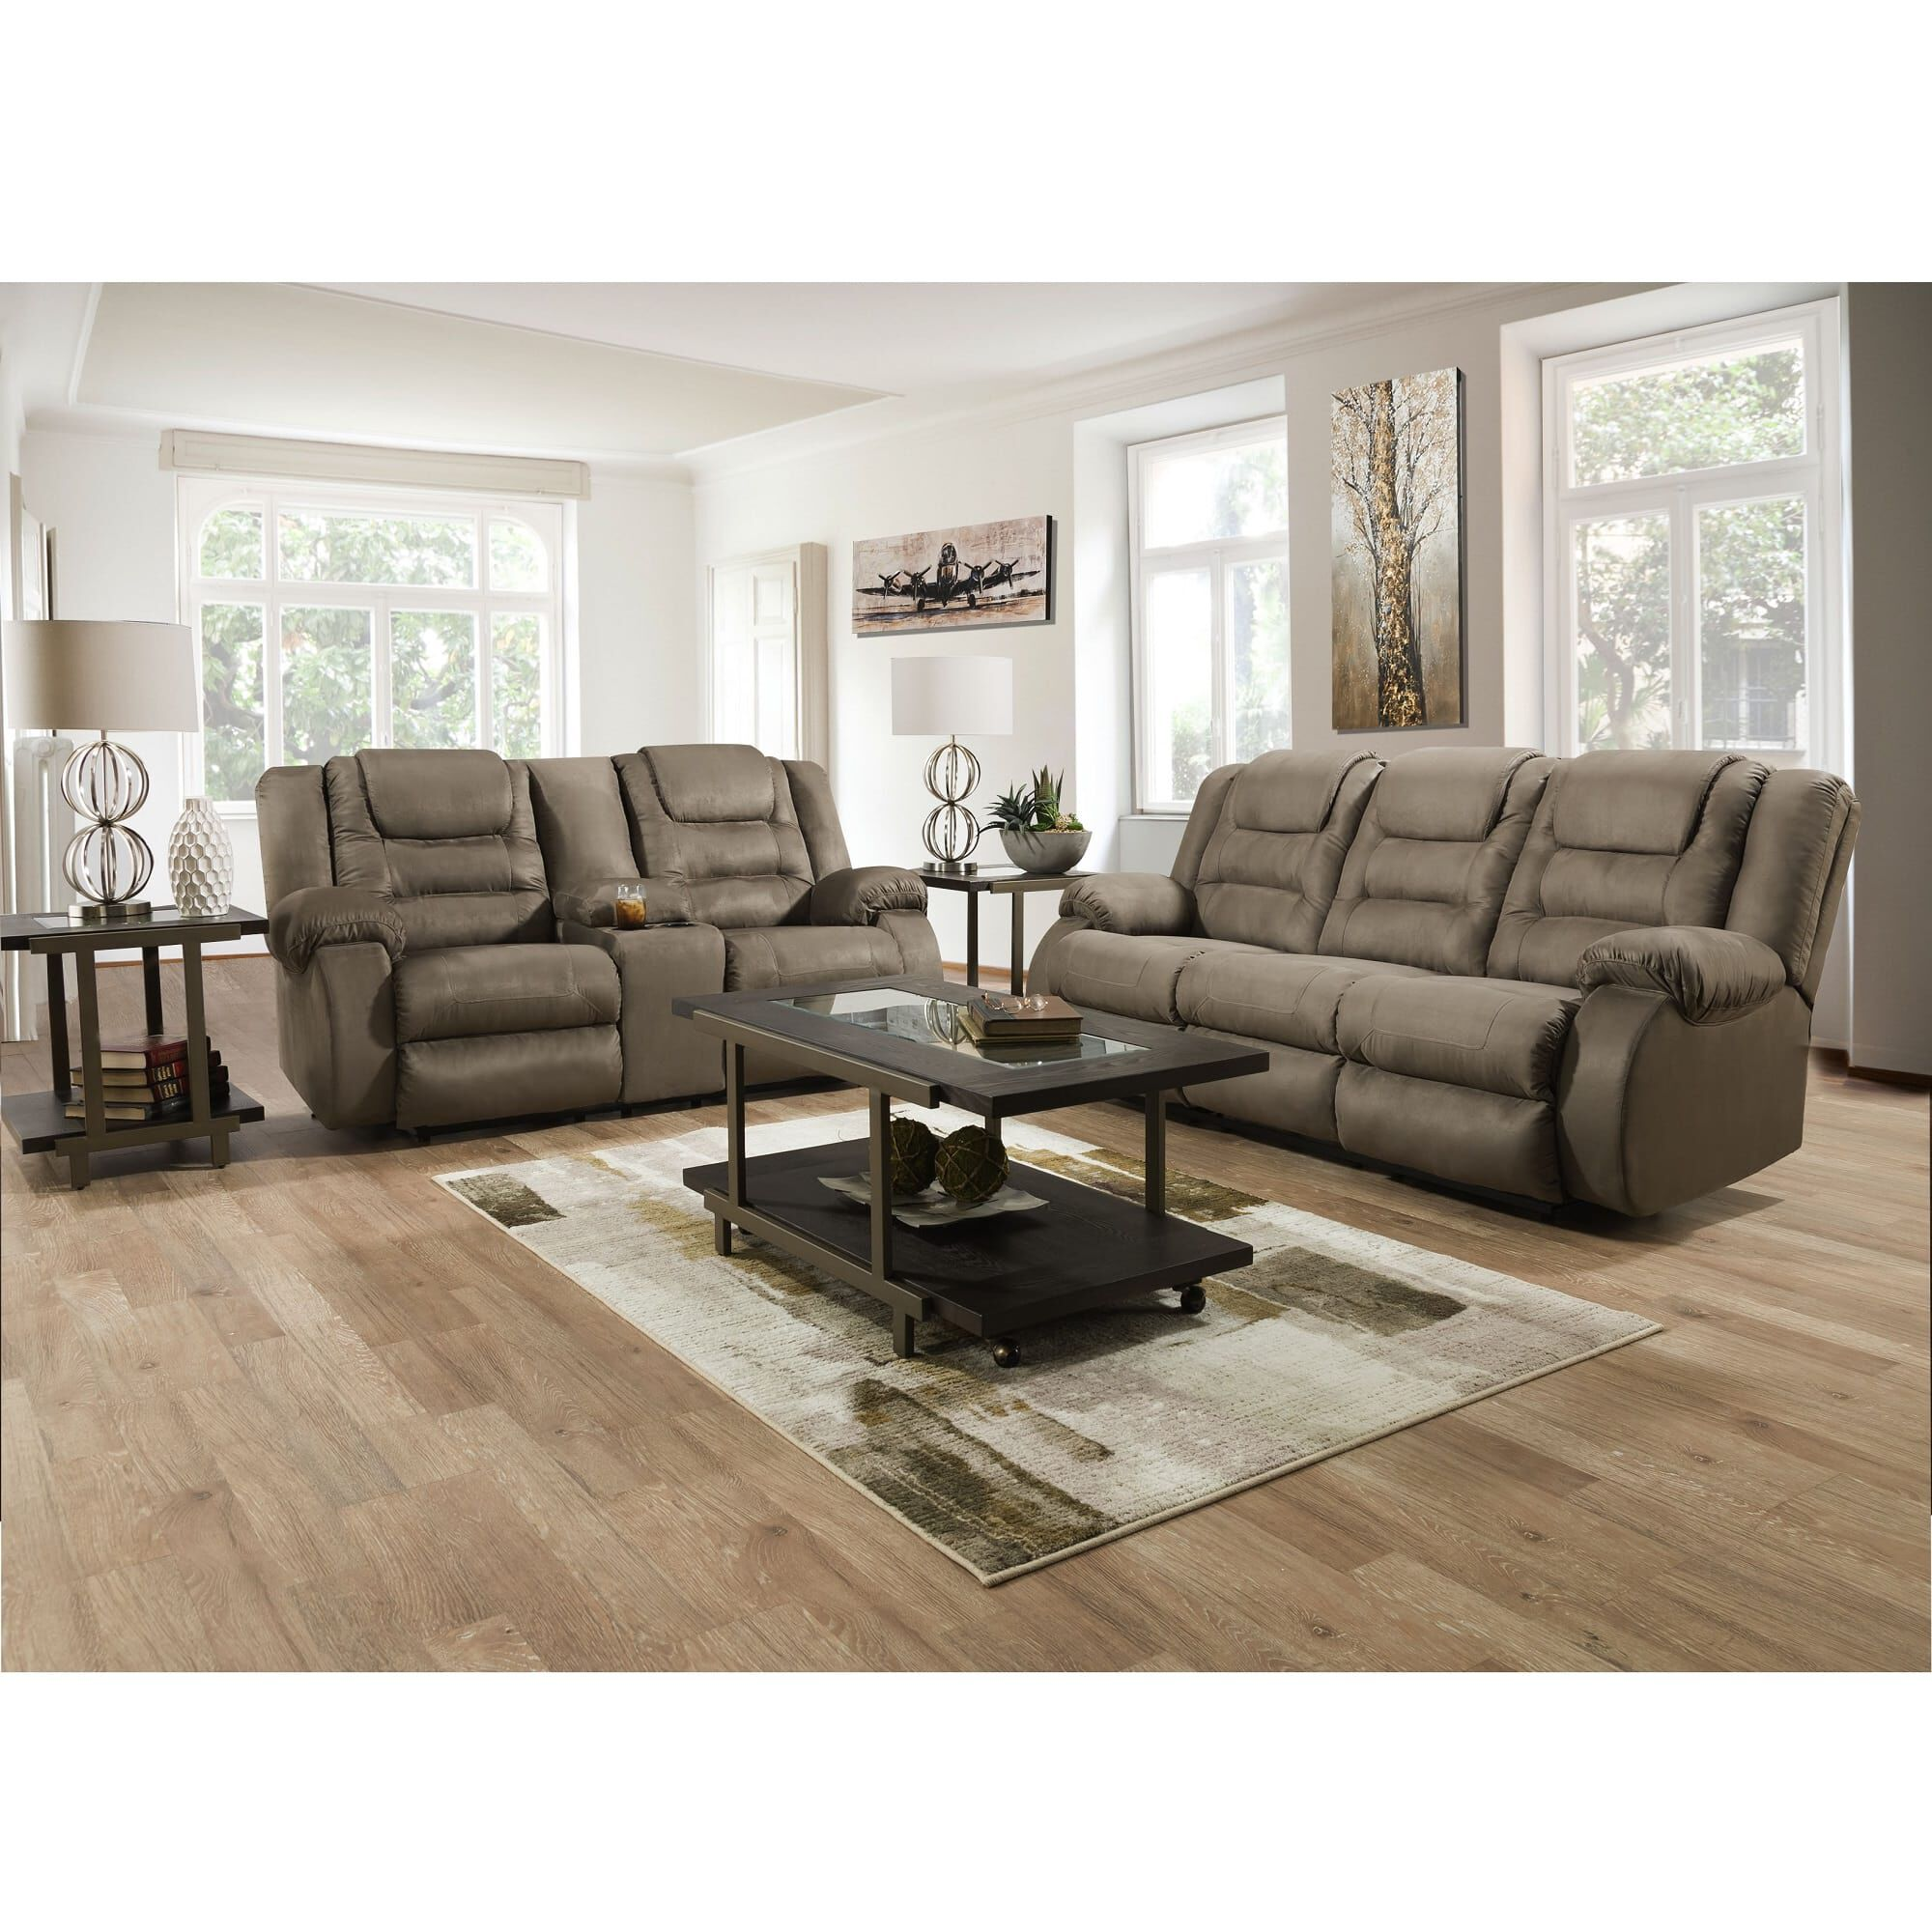 Furniture Stores Near Me With Layaway Living Room Furniture Online Layaway Furniture Ideas